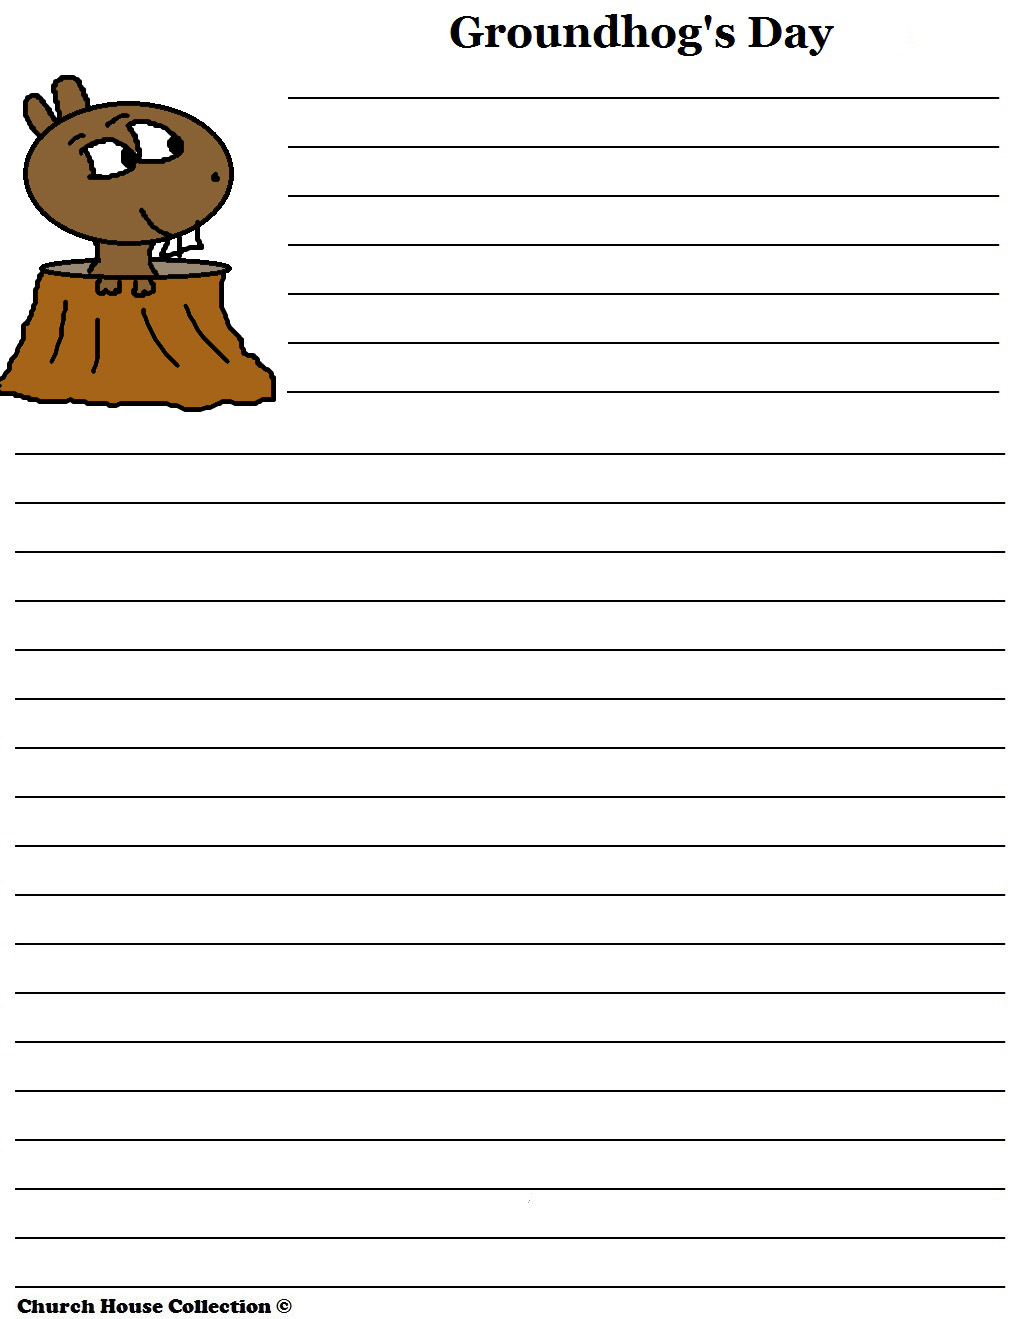 groundhog day writing paper Groundhog's day crafts groundhog's day activities for children groundhog paper craft with predictions worksheet or writing paper.